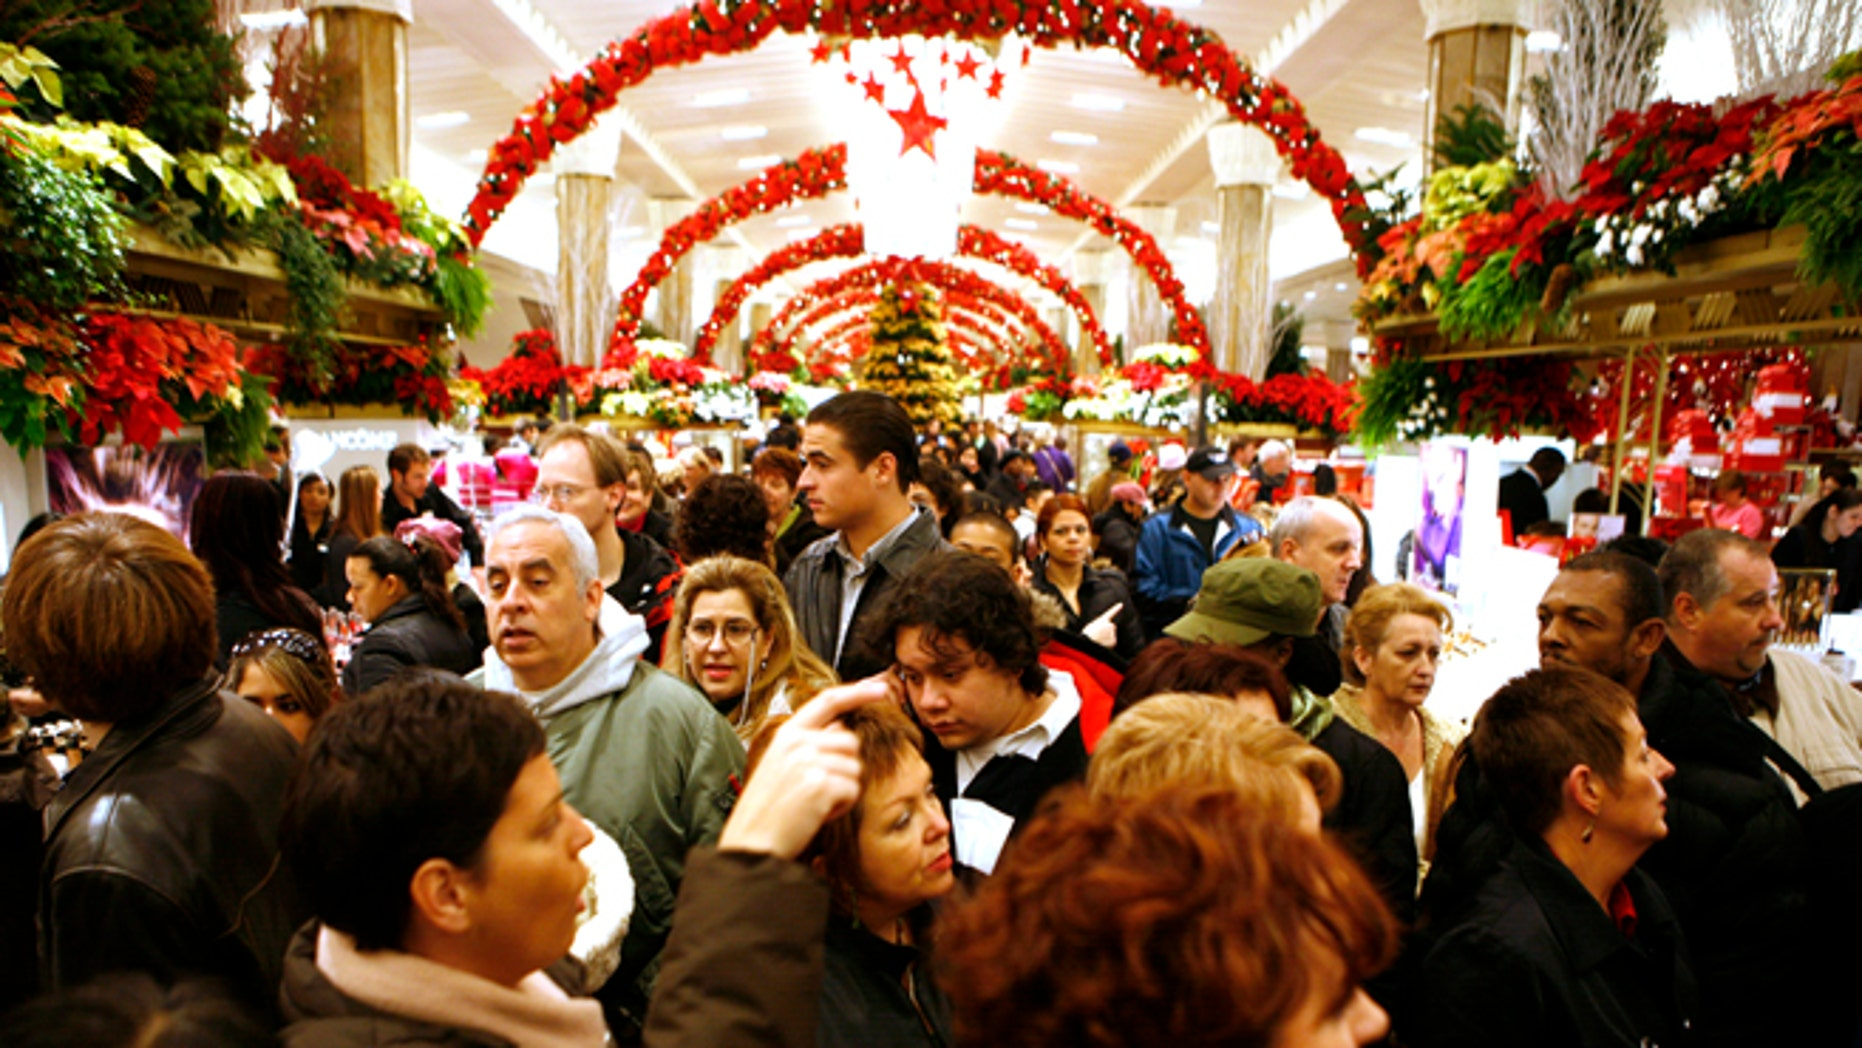 Shoppers fight the holiday crowds at Macy's at Herald Square in New York.